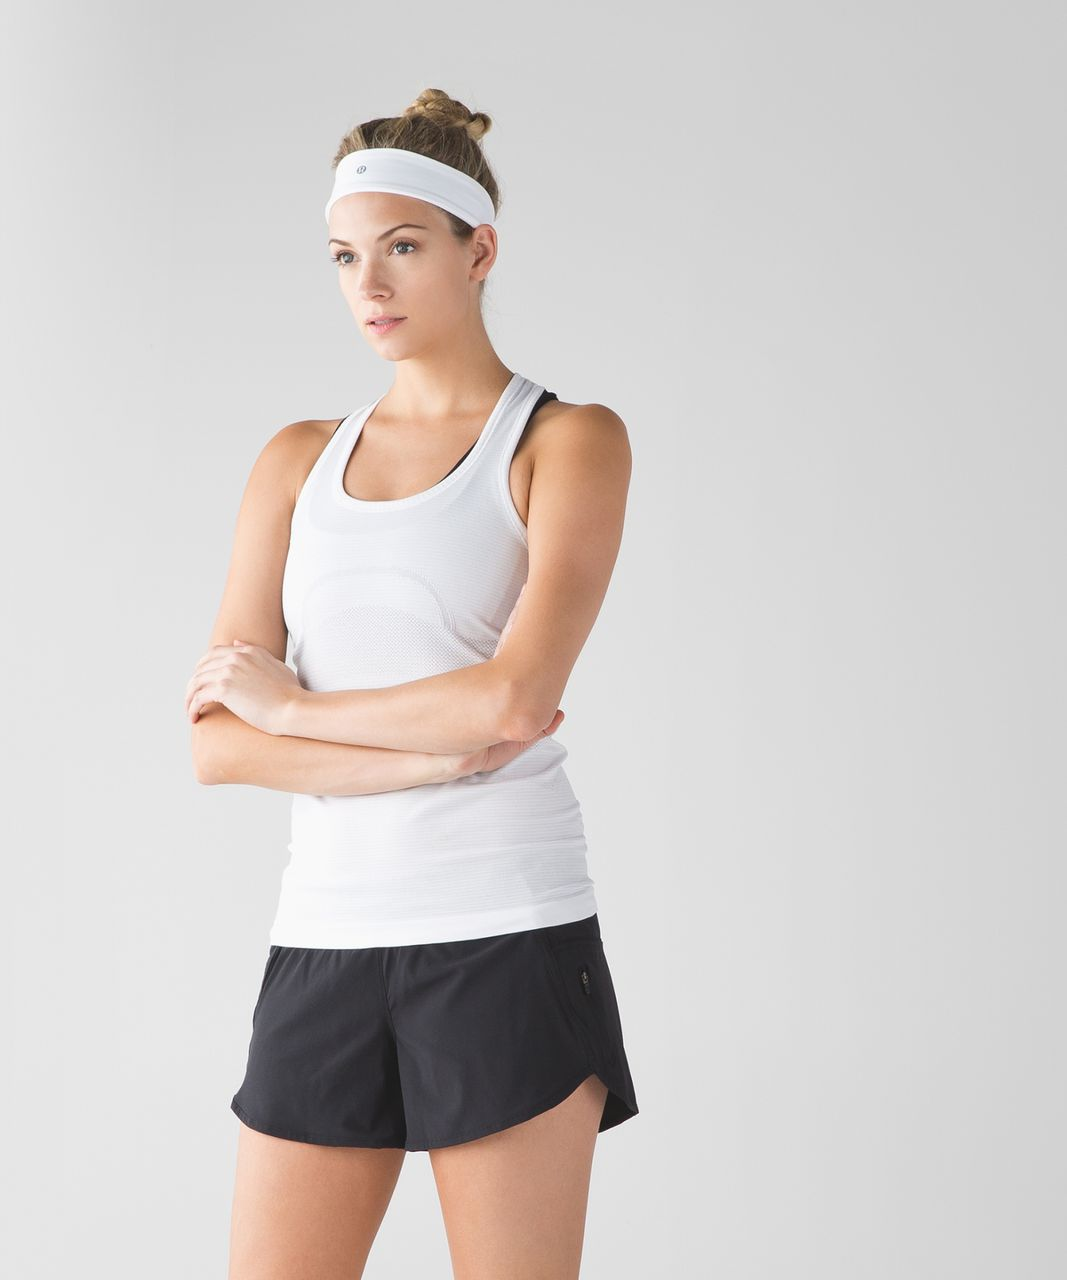 Lululemon Fly Away Tamer Headband 2.0 - White